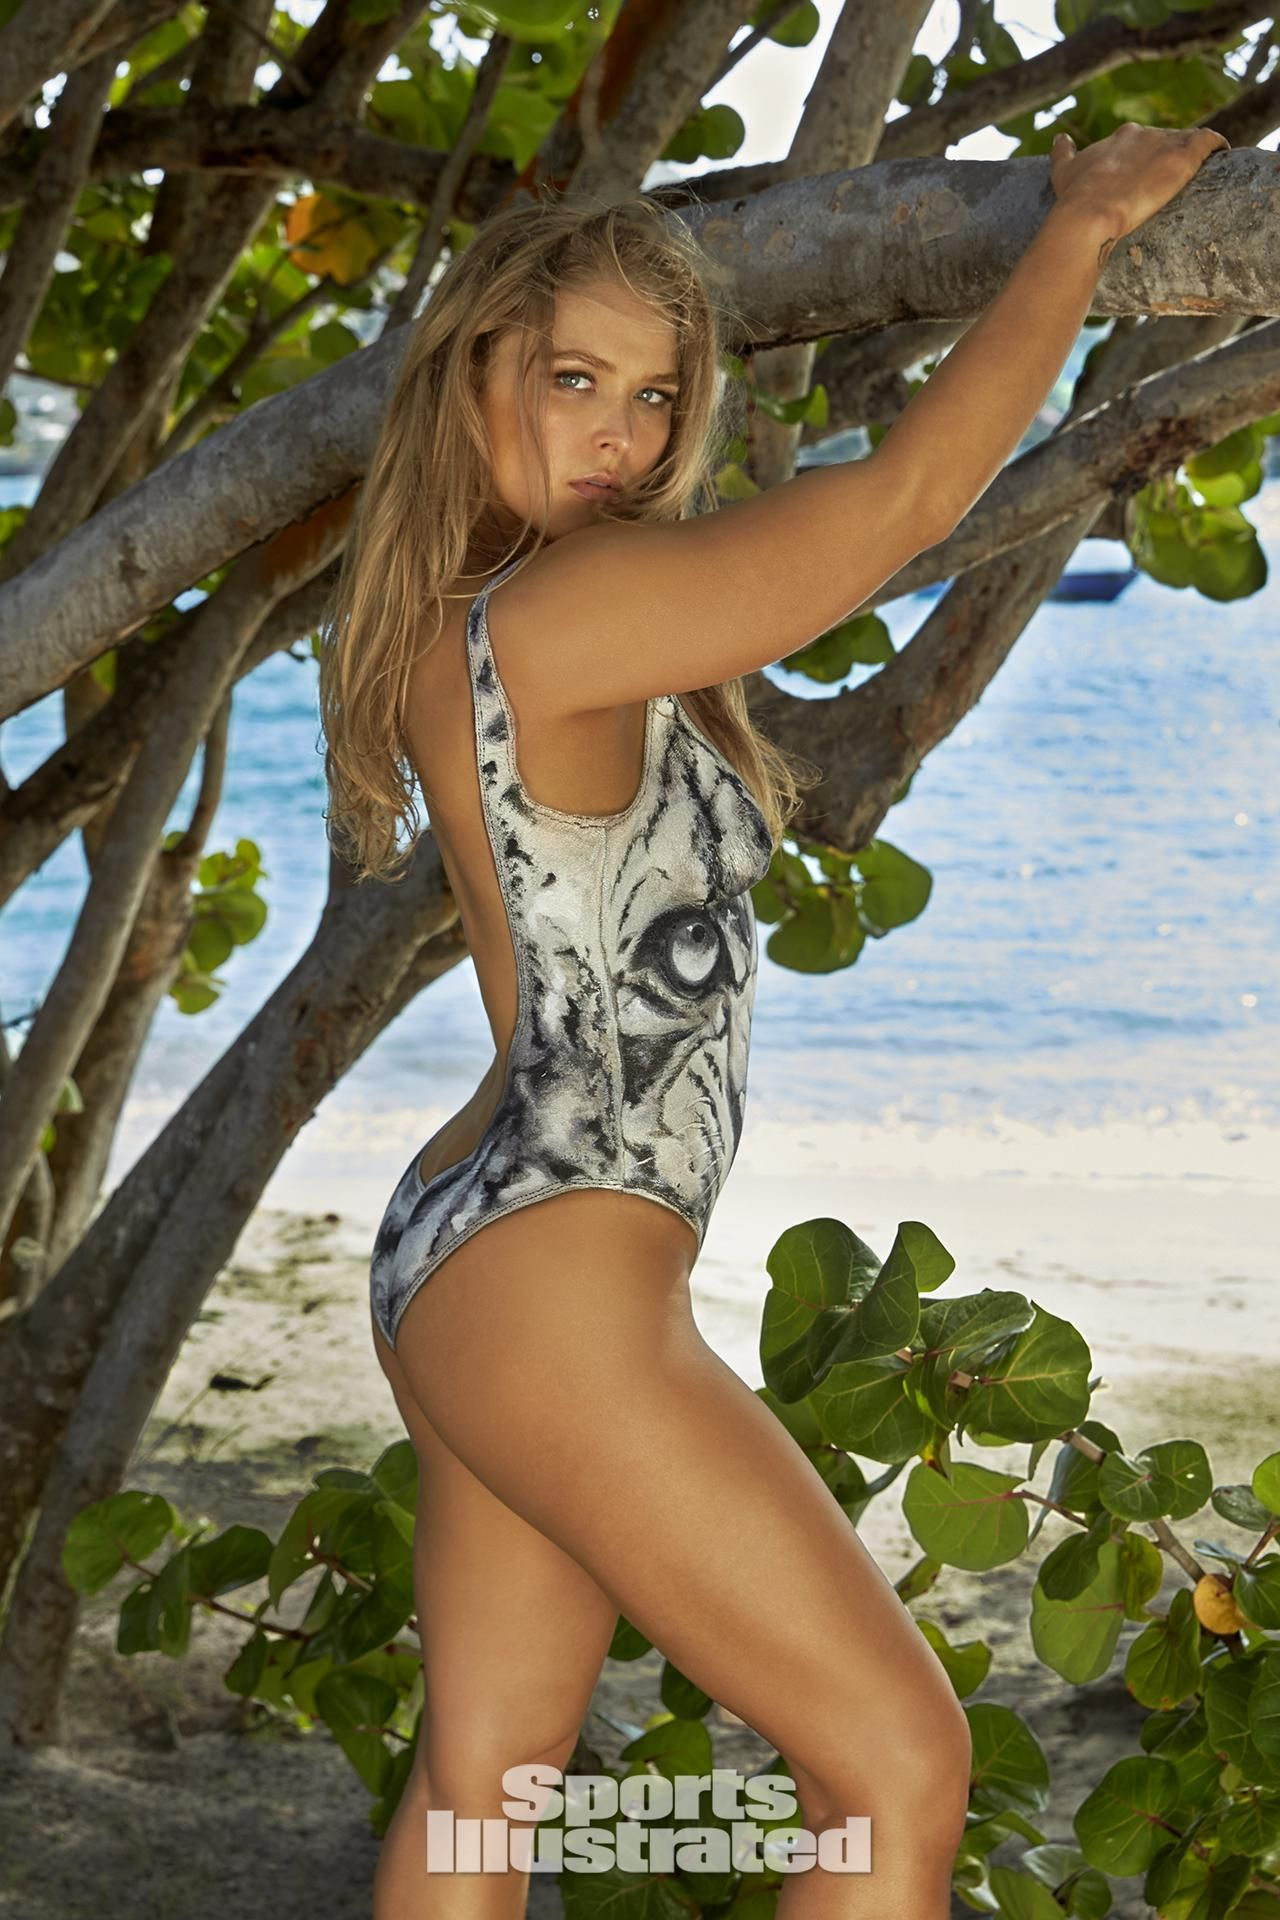 Here Is Ronda Rousey's Exact Diet and Exercise Plan for You toCopy advise